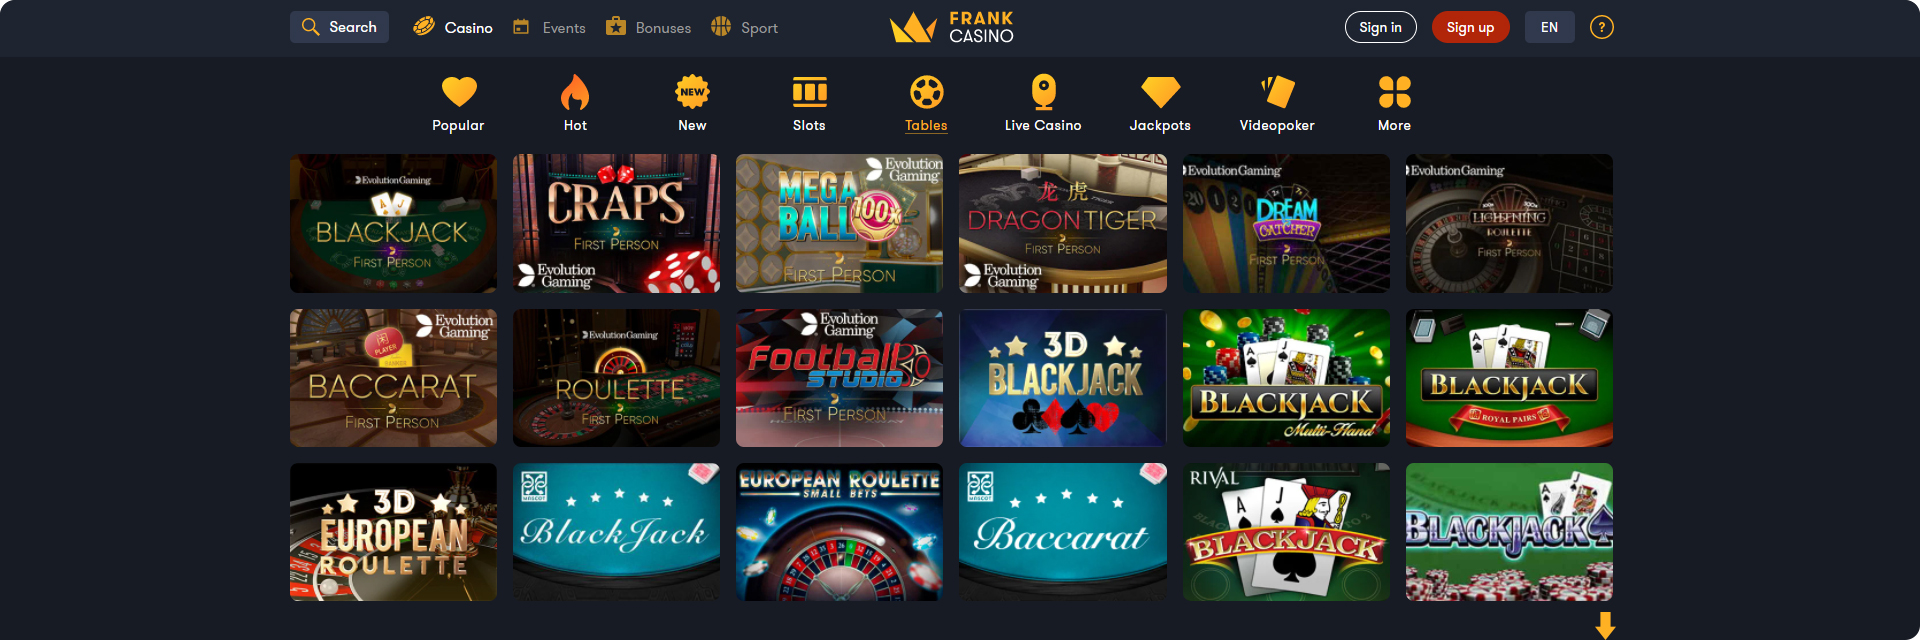 Frank table games casino.